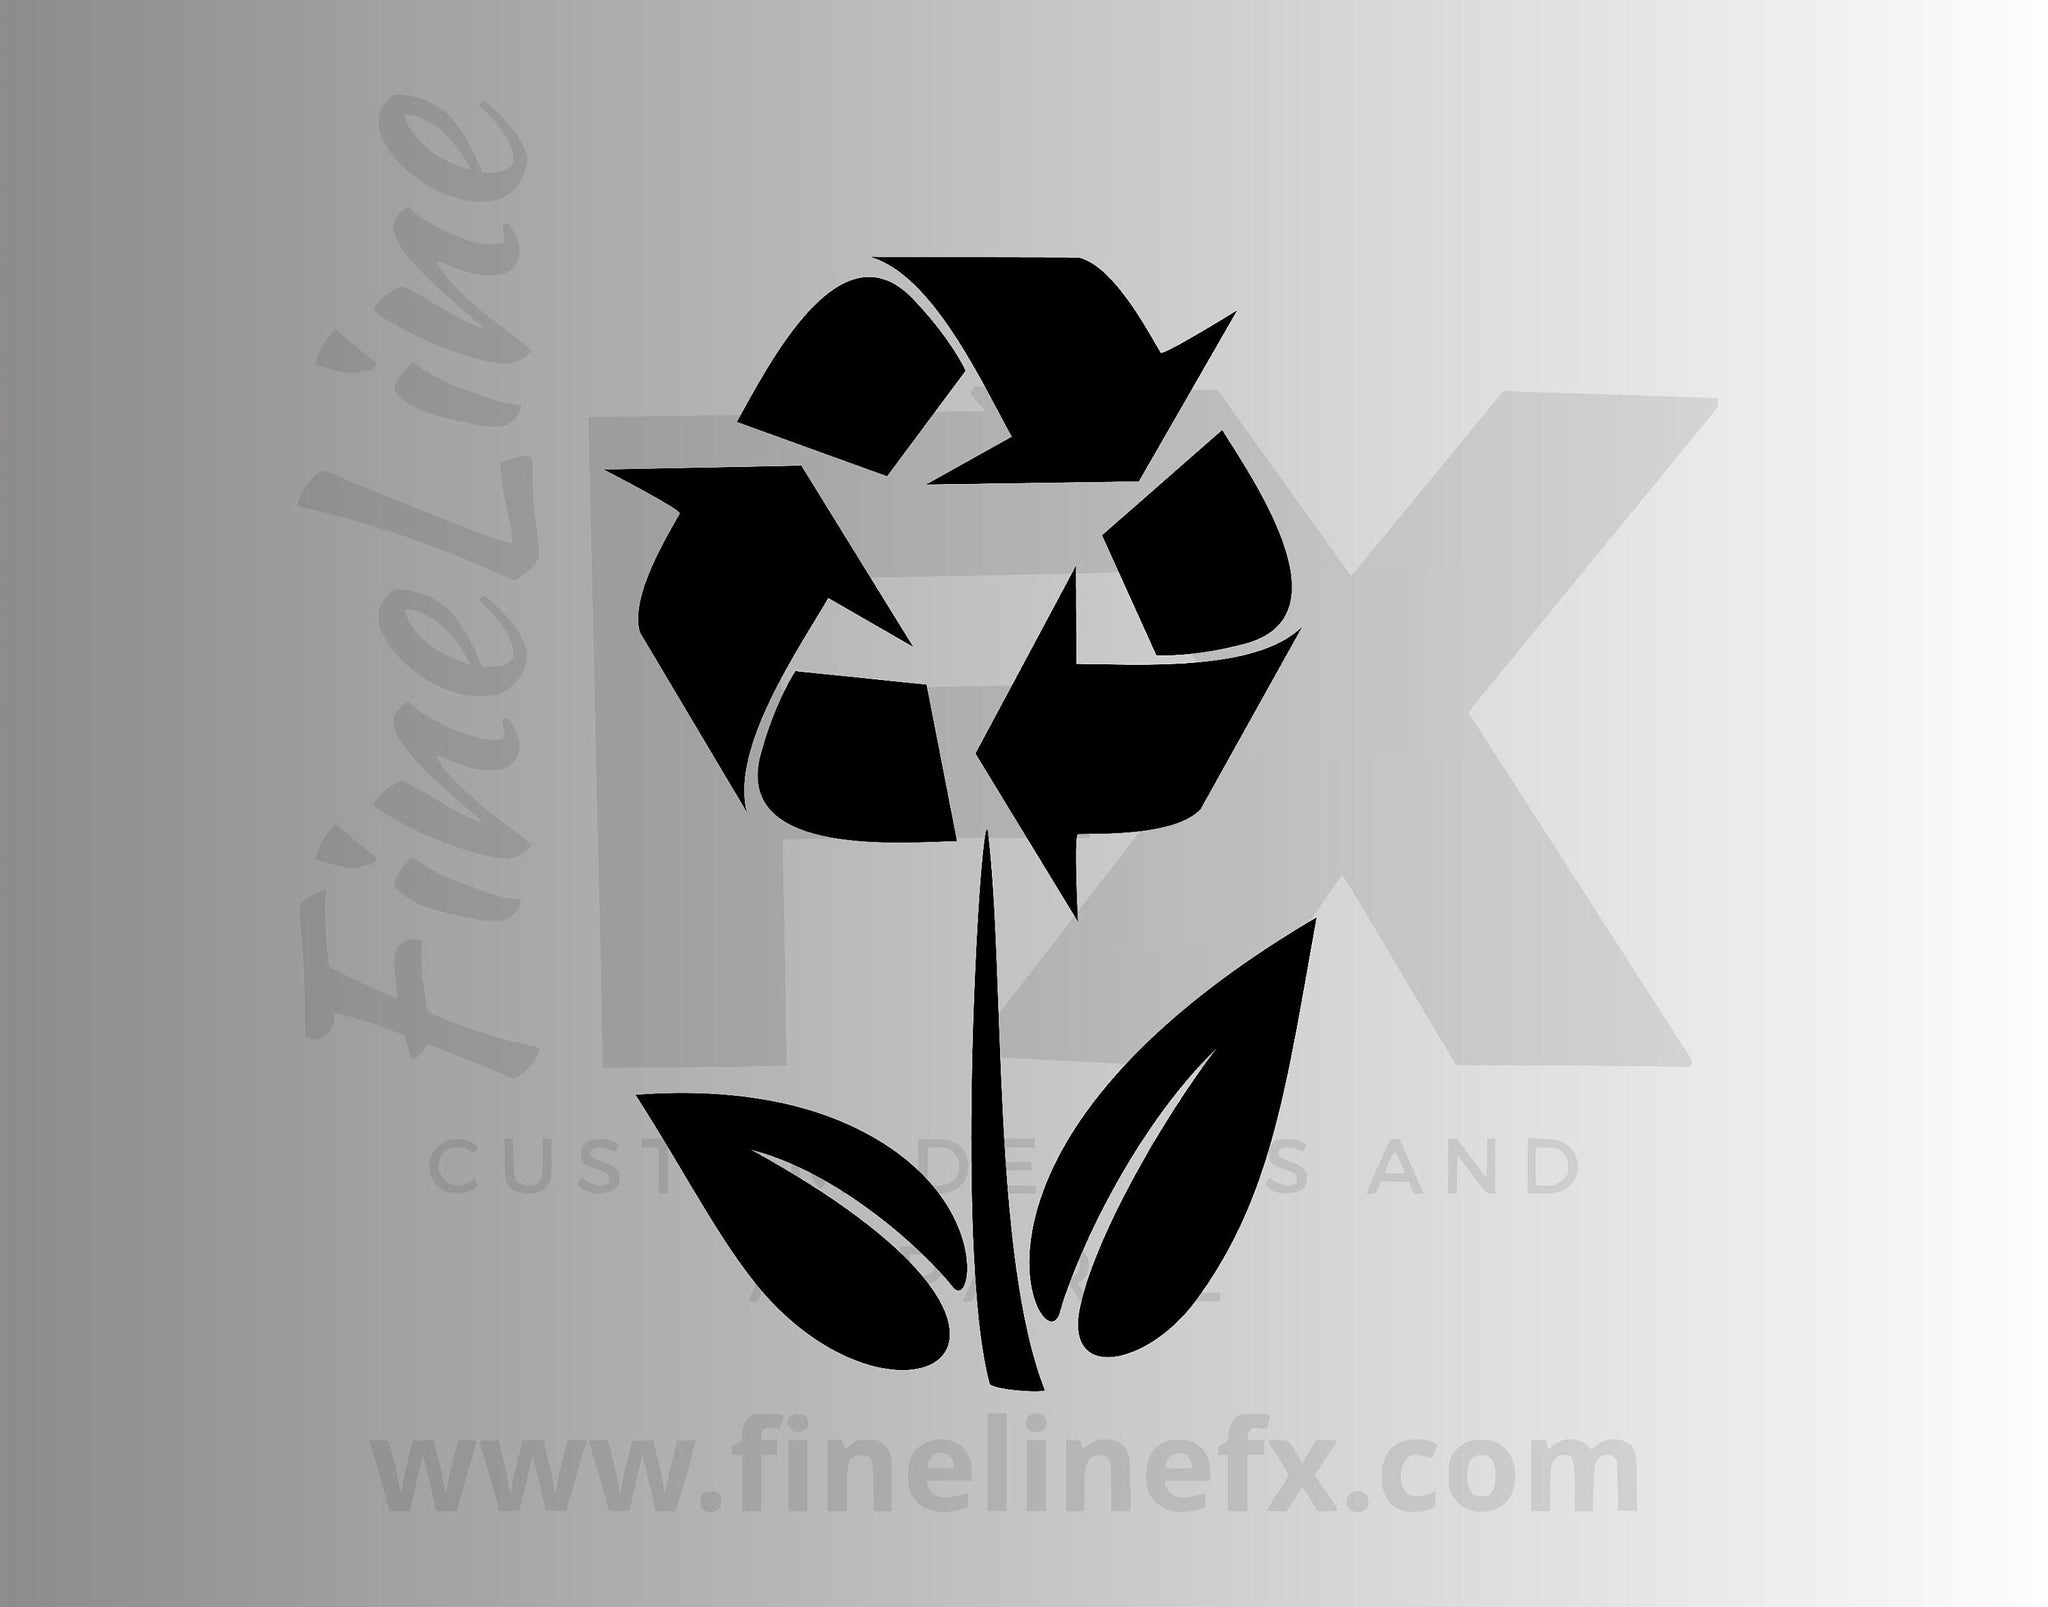 Recycling Symbol Flower, Recycle Bin Vinyl Decal Sticker